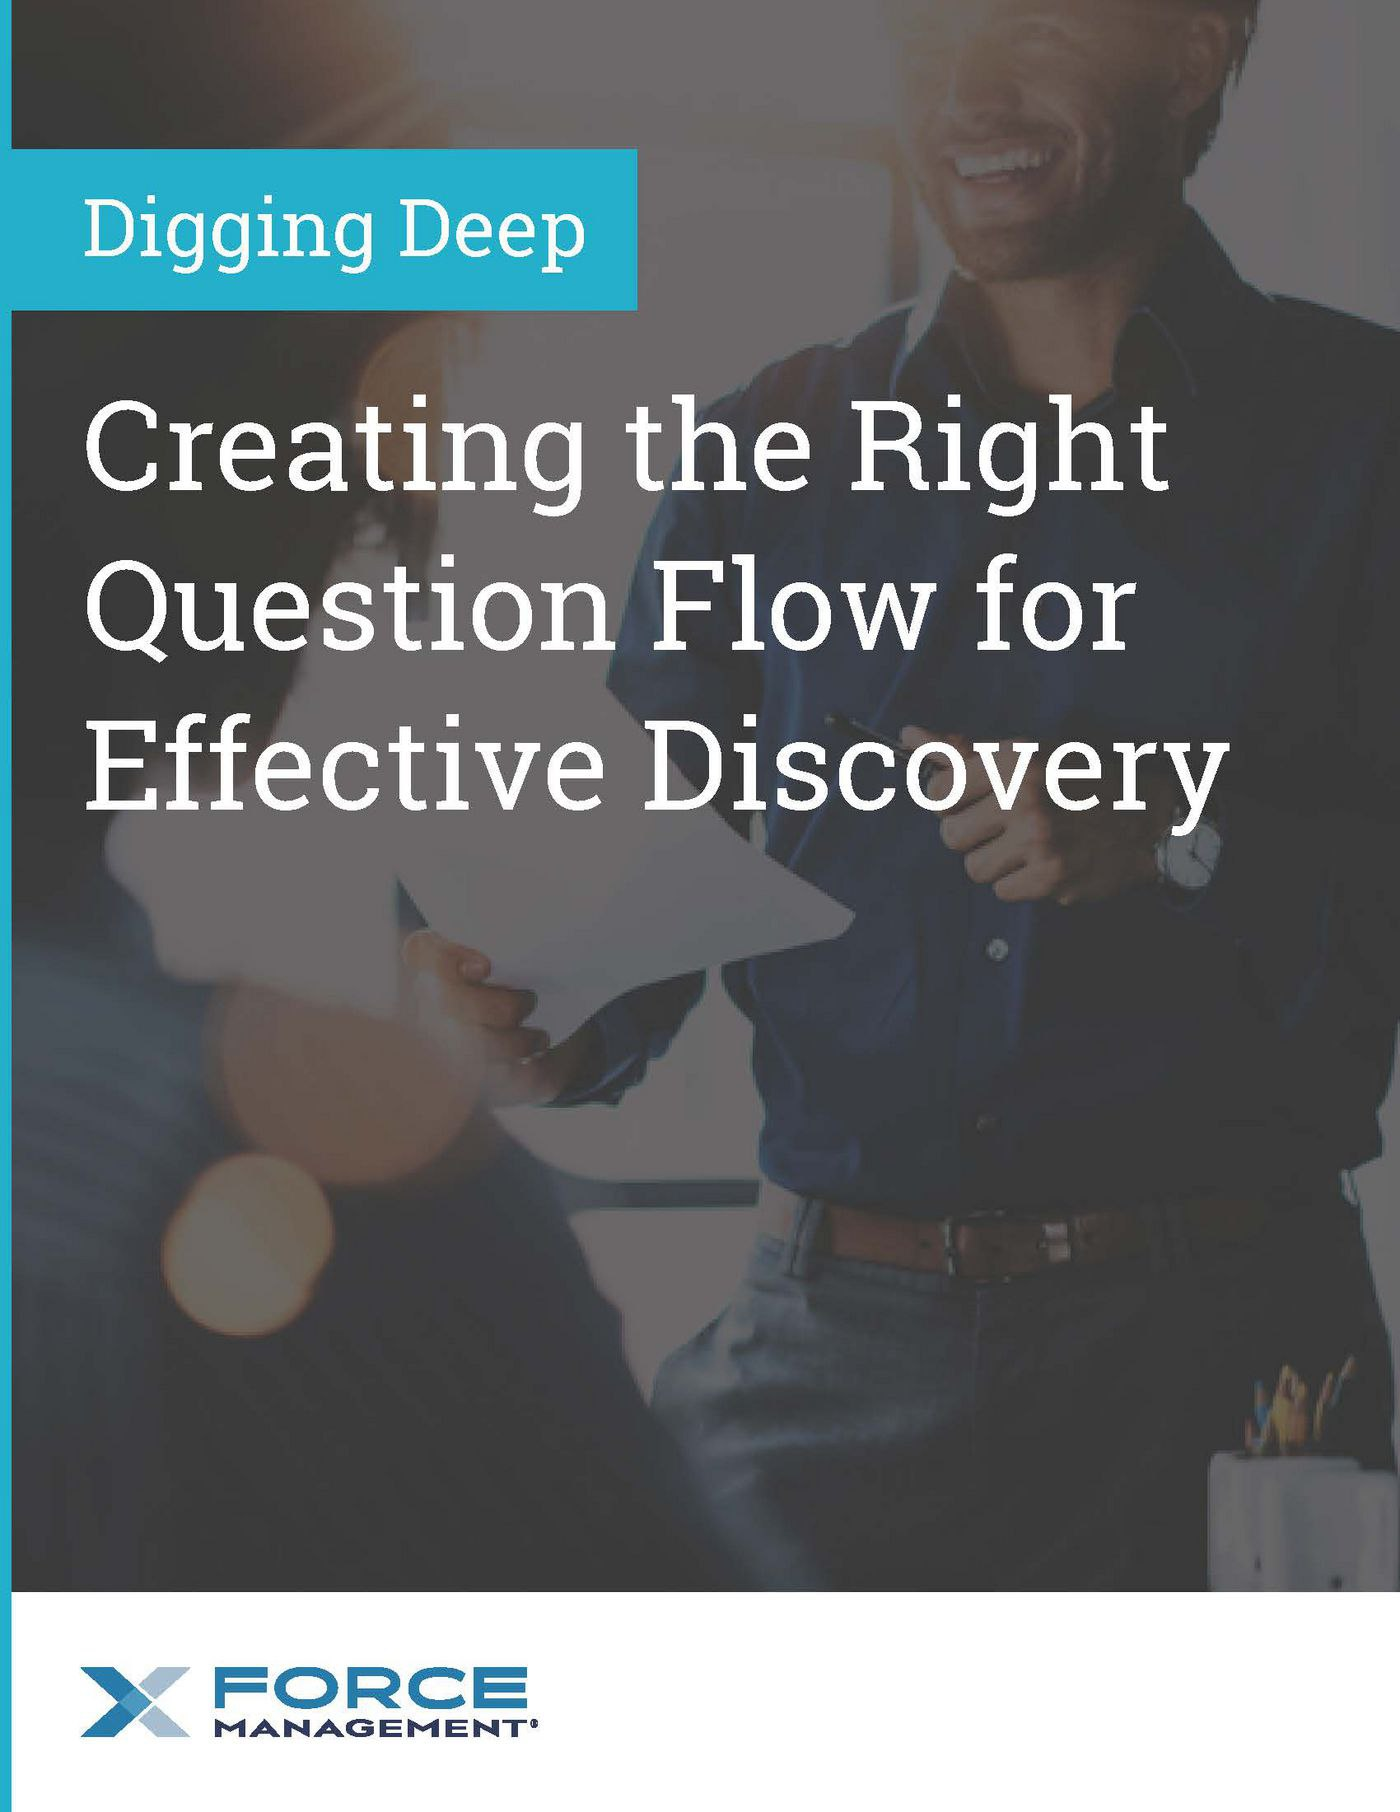 Digging Deep Creating the Right Questions Flow for Effective Discovery